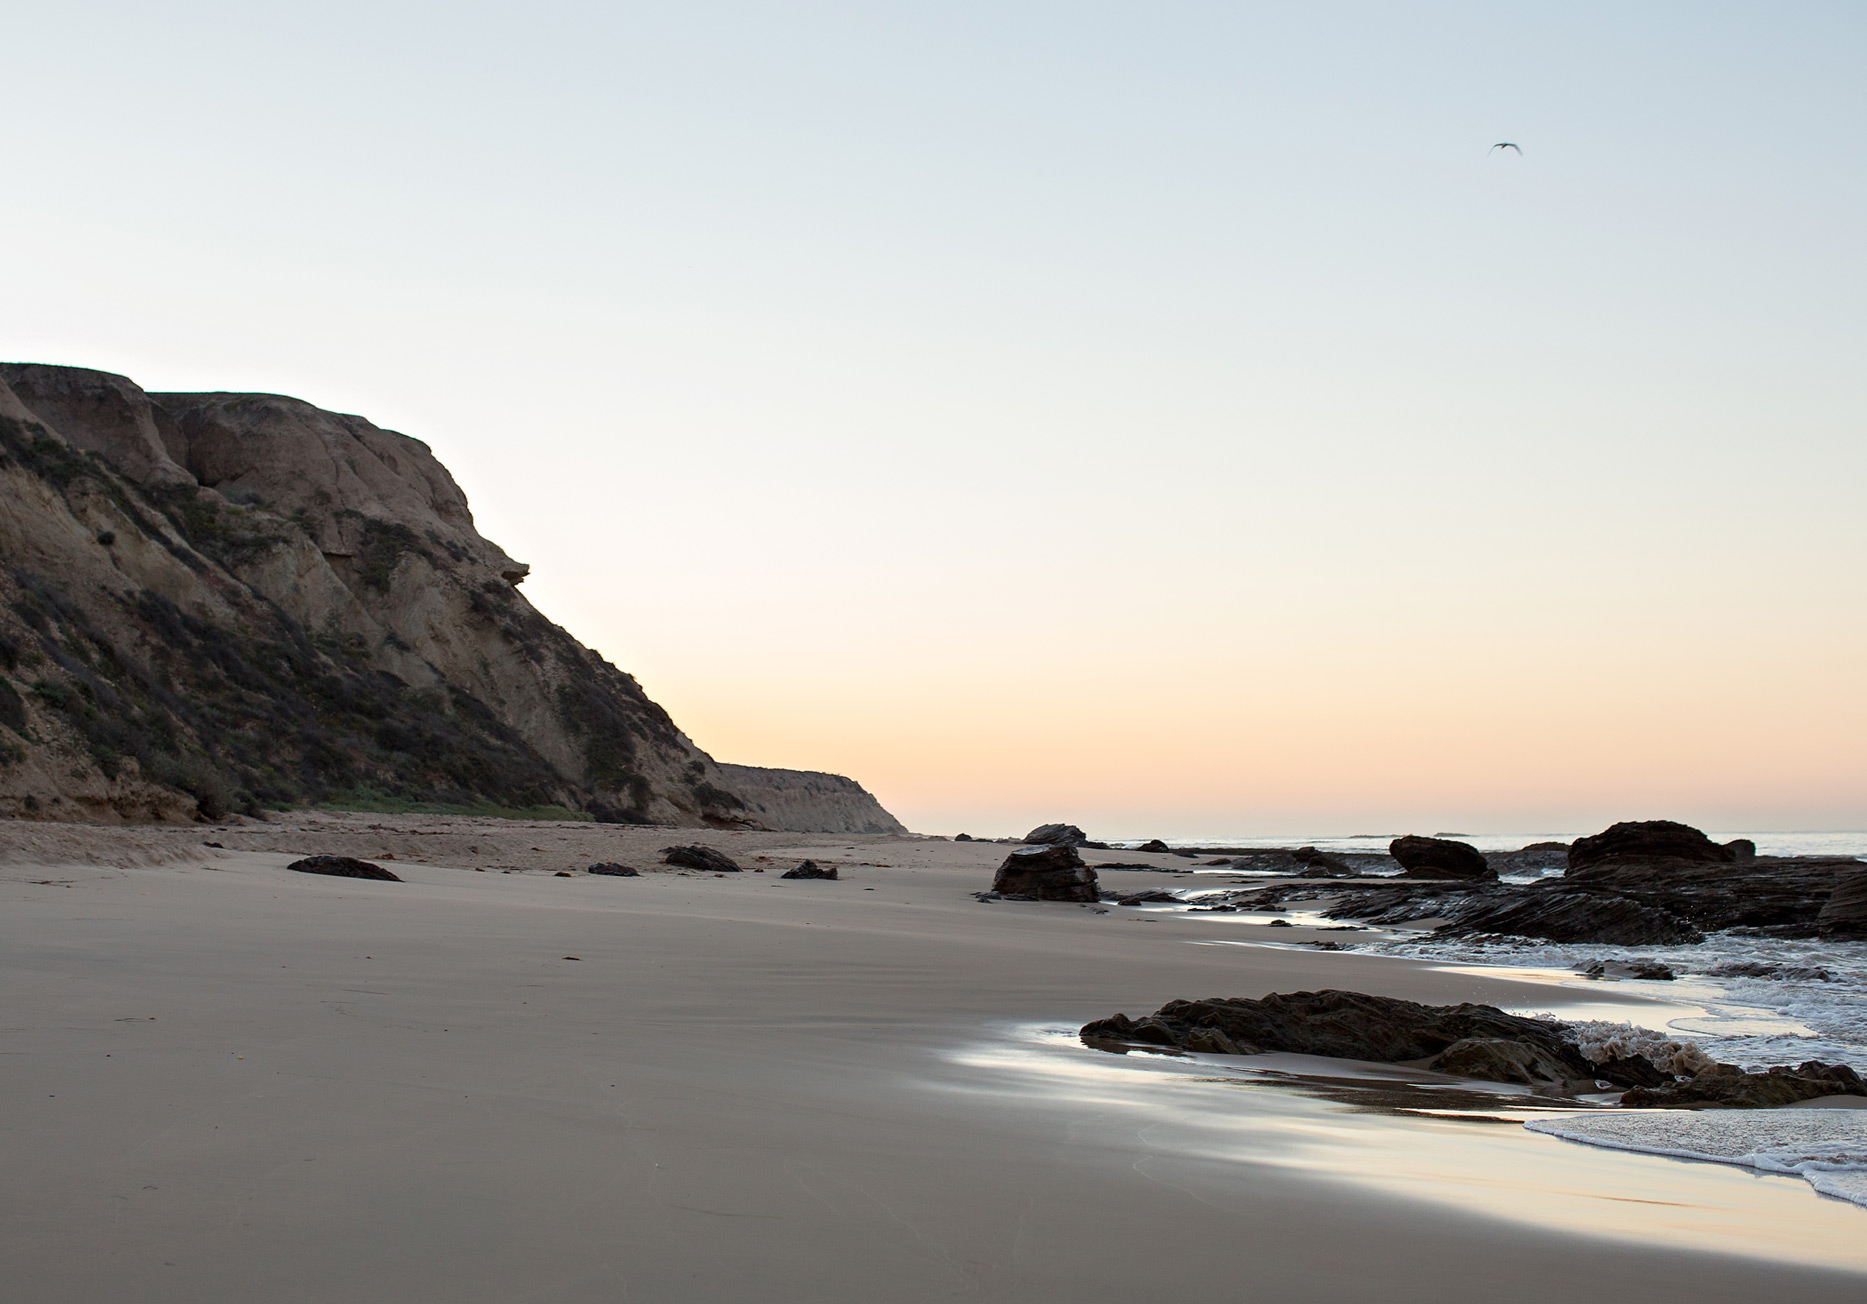 the elle in love, crystal cove state park, california, sunrise on the beach, intentional marriage